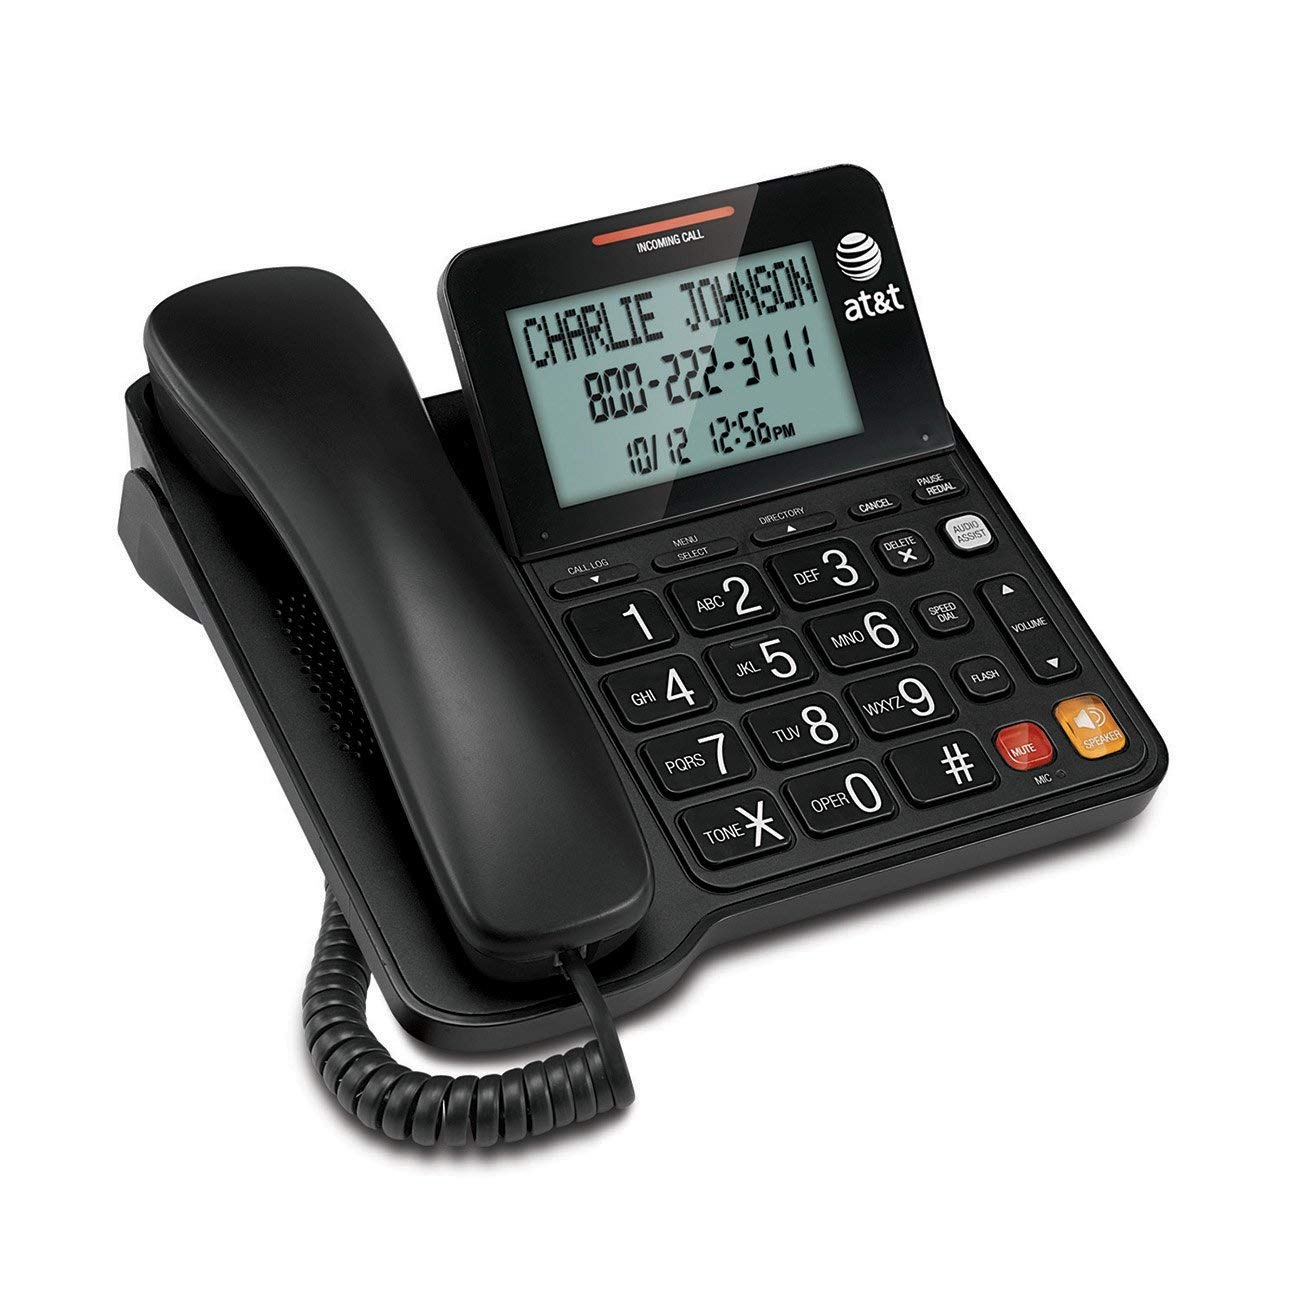 AT waiting Speakerphone Display Buttons